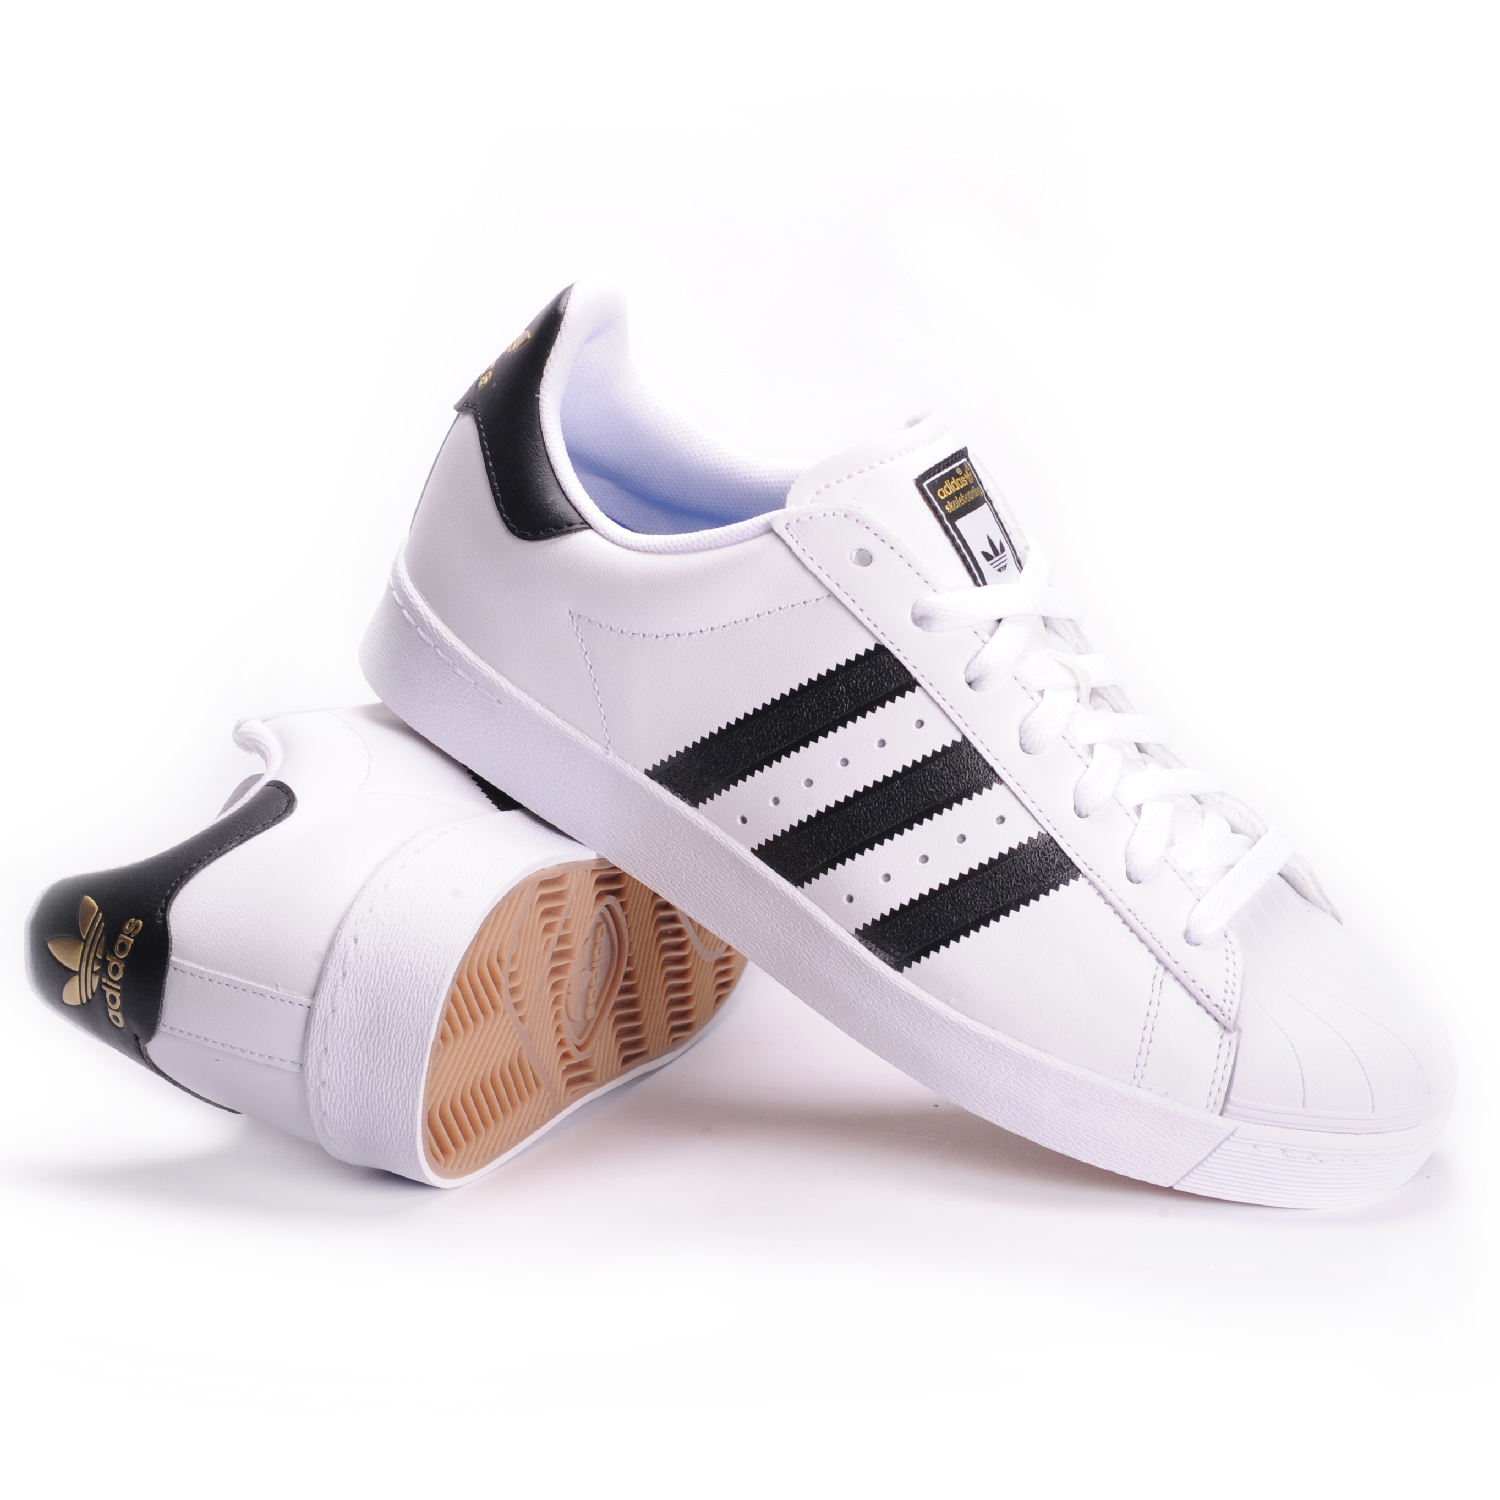 Buy Adidas Superstar Foundation Jr Compare Prices on idealo.co.uk